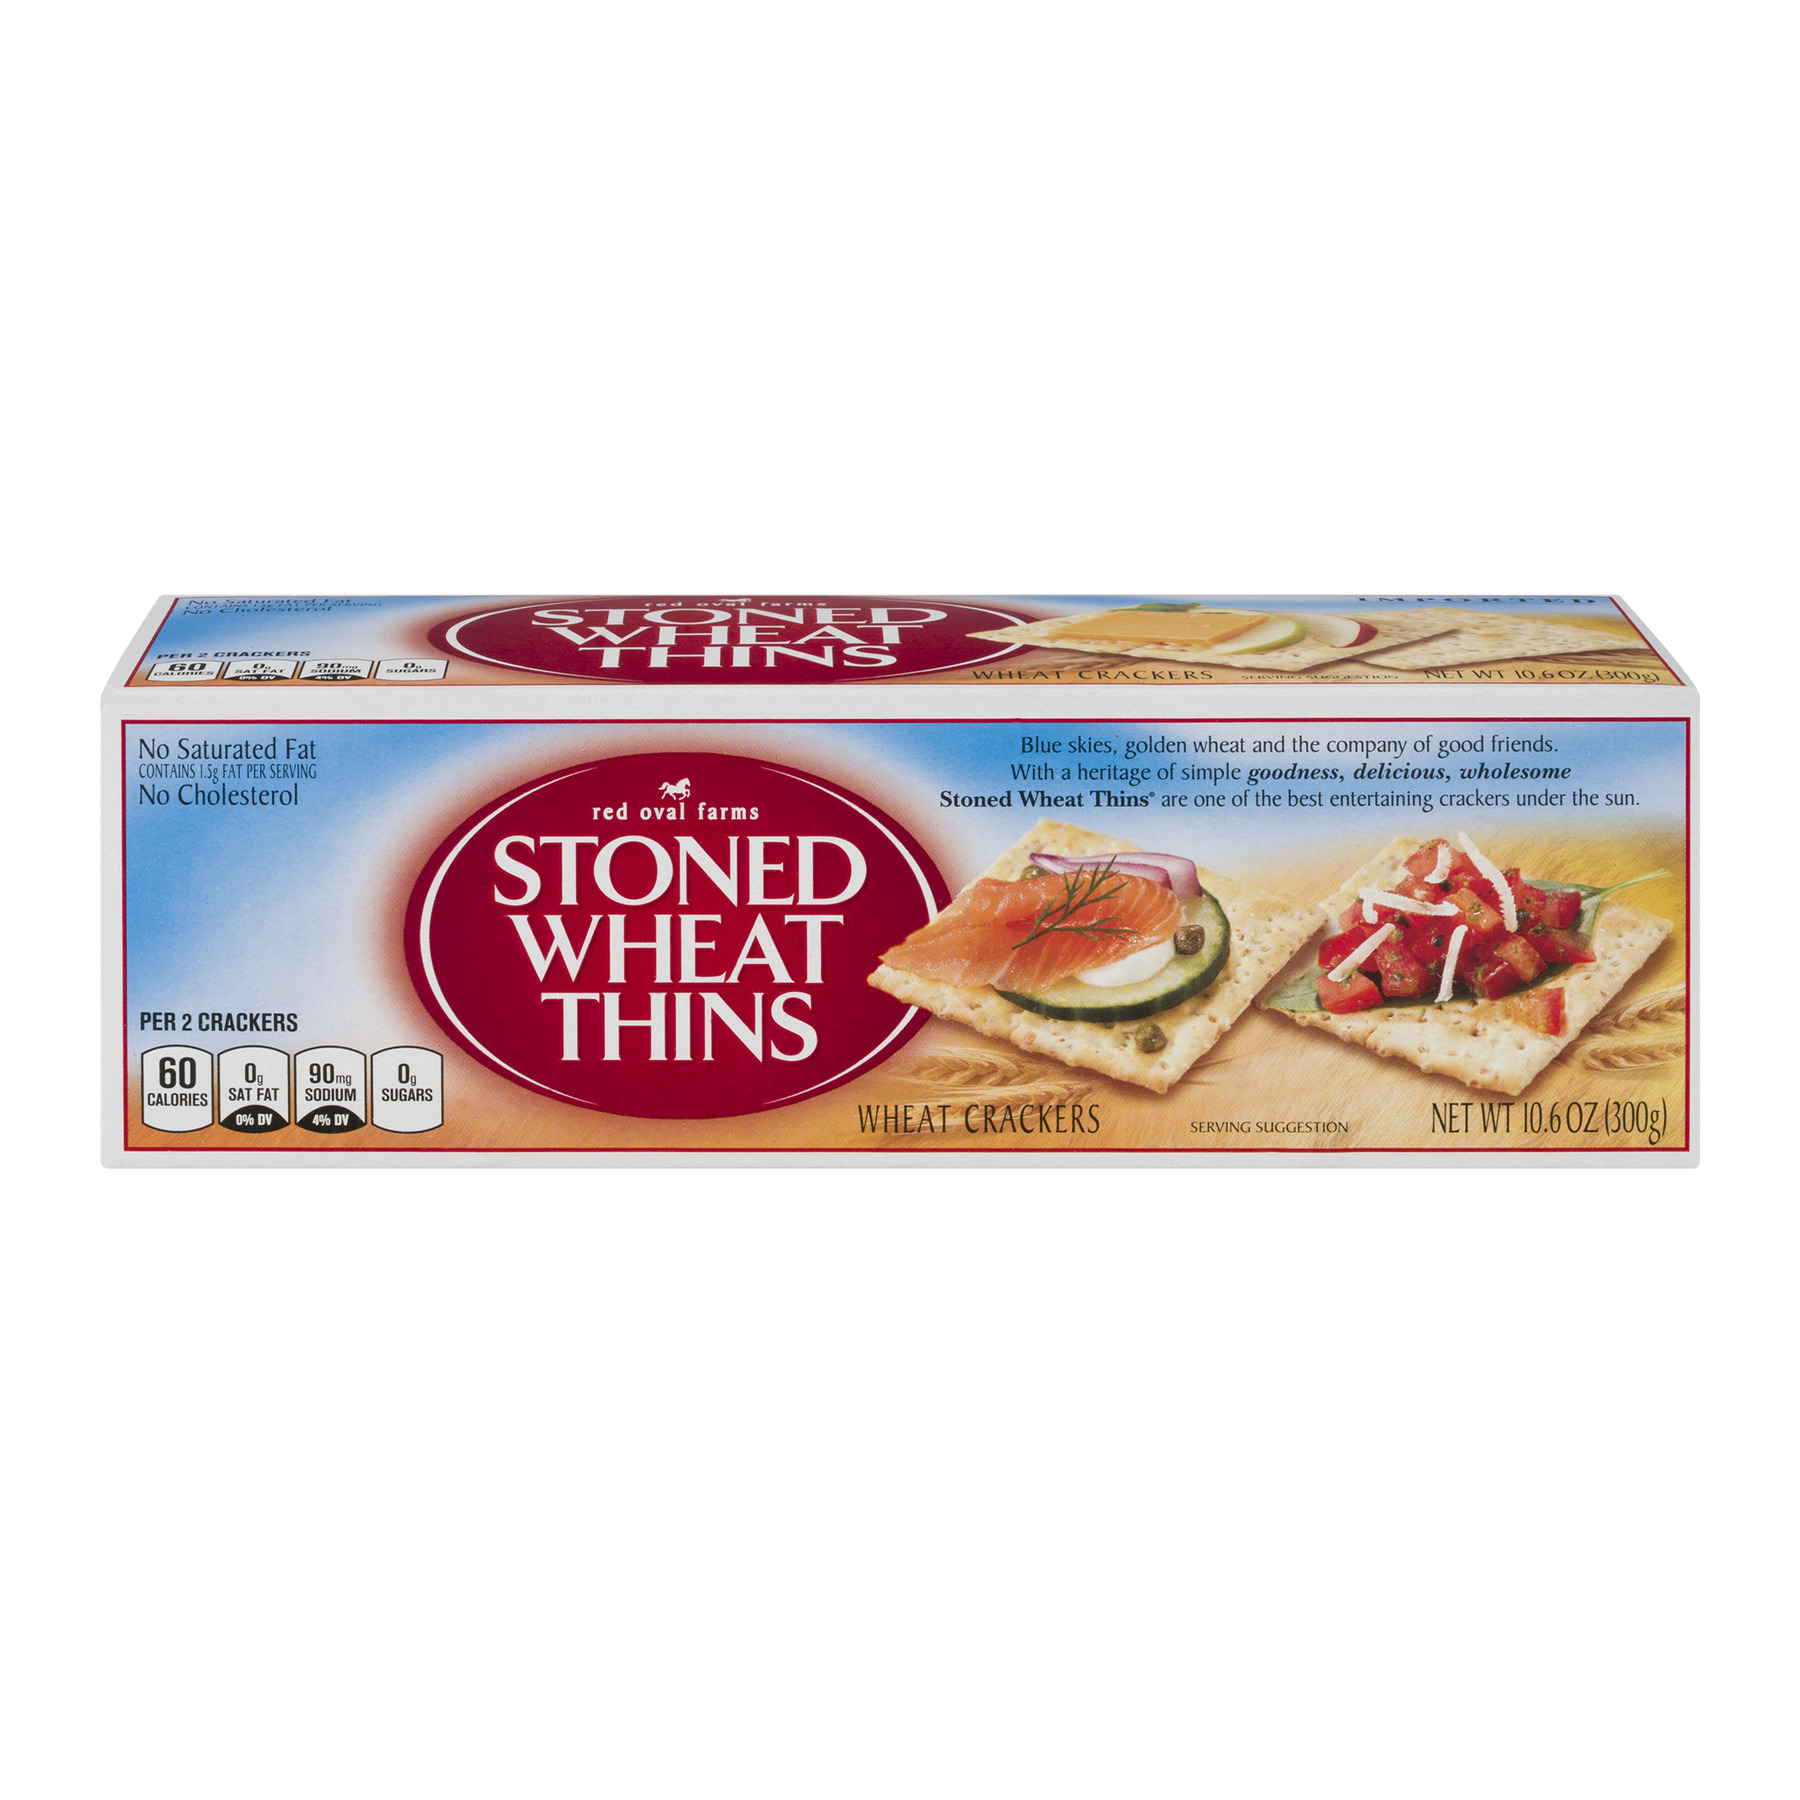 Red Oval Farms Stoned Wheat Thins Snack Crackers, 10.6 OZ